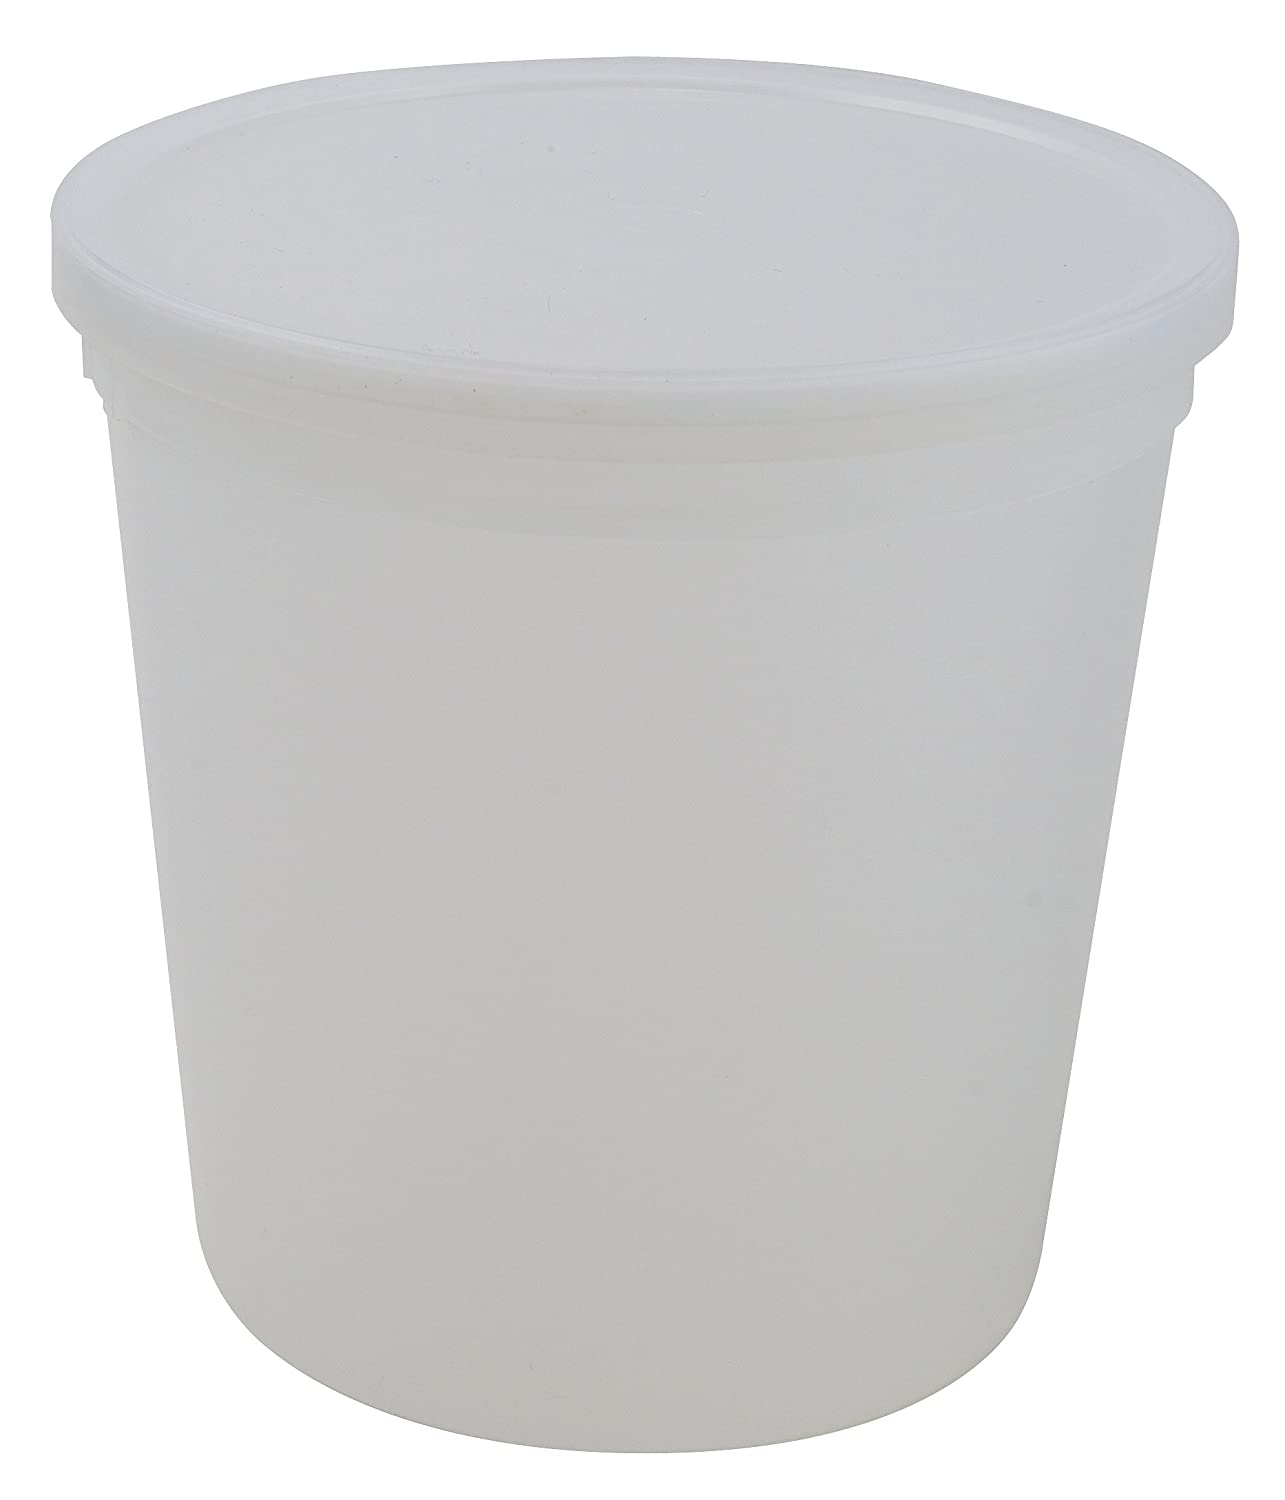 Dynalon 453555 Natural Cylindrical Lab Storage Container with Snap On Lid, 83oz Capacity (Case of 25)